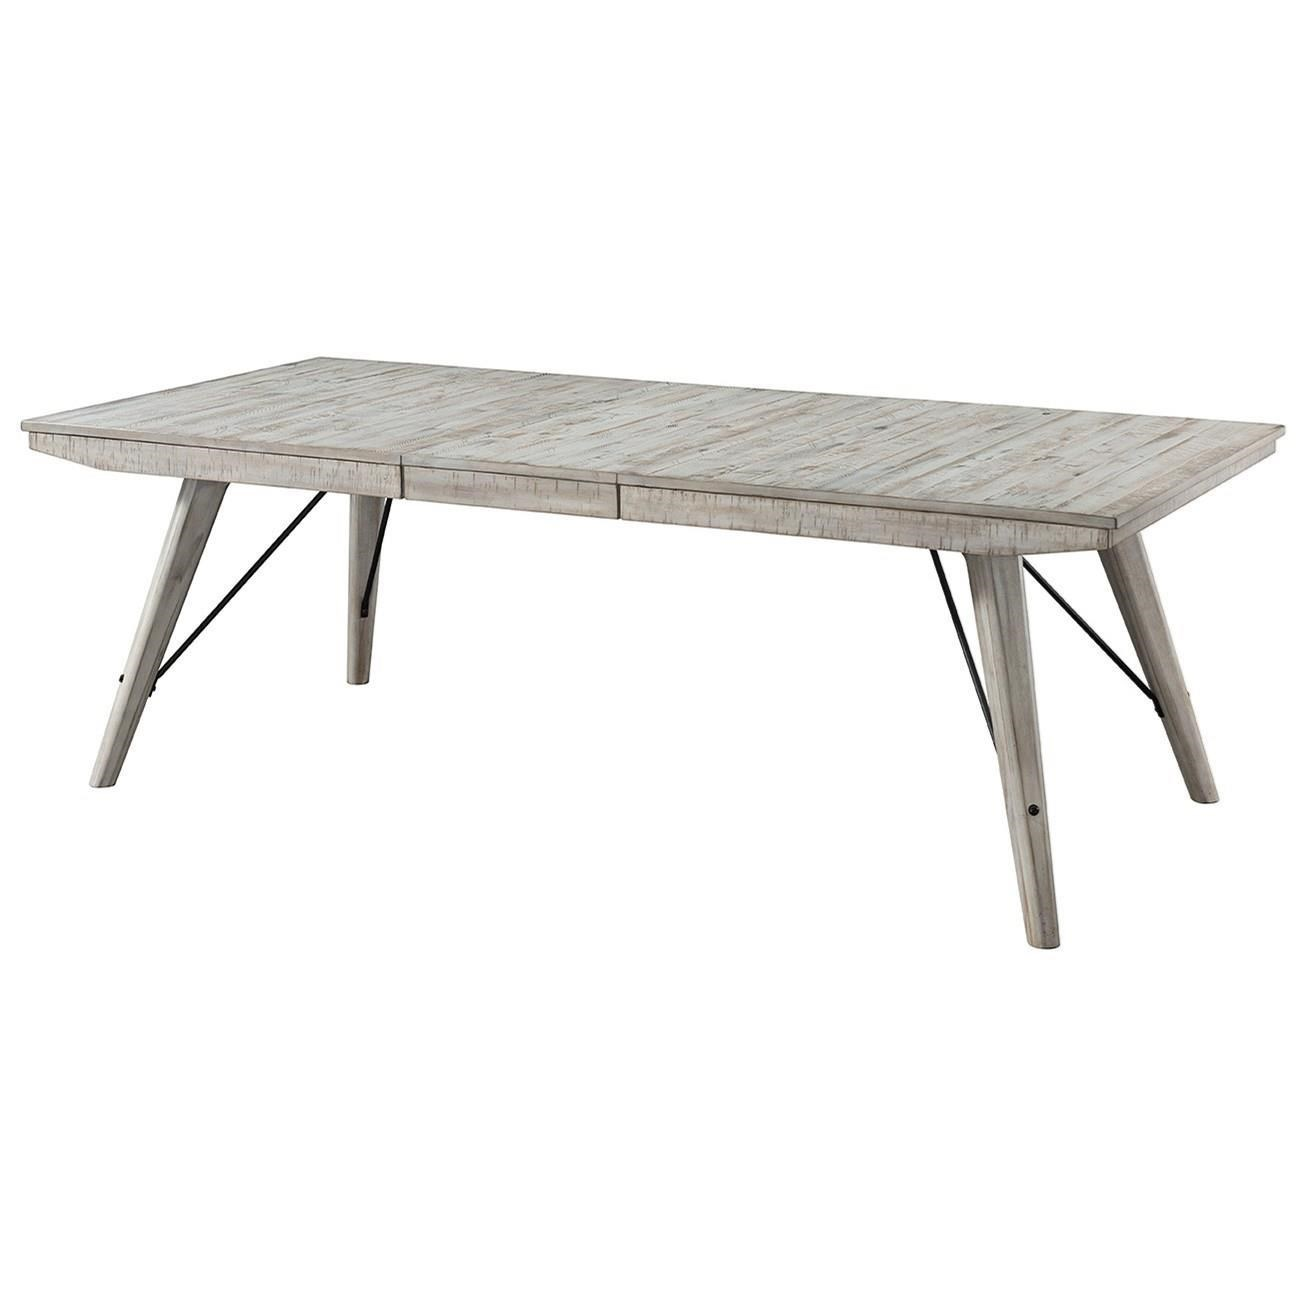 Rectangular Dining Room Tables With Leaves: Intercon Modern Rustic Contemporary Rectangular Dining